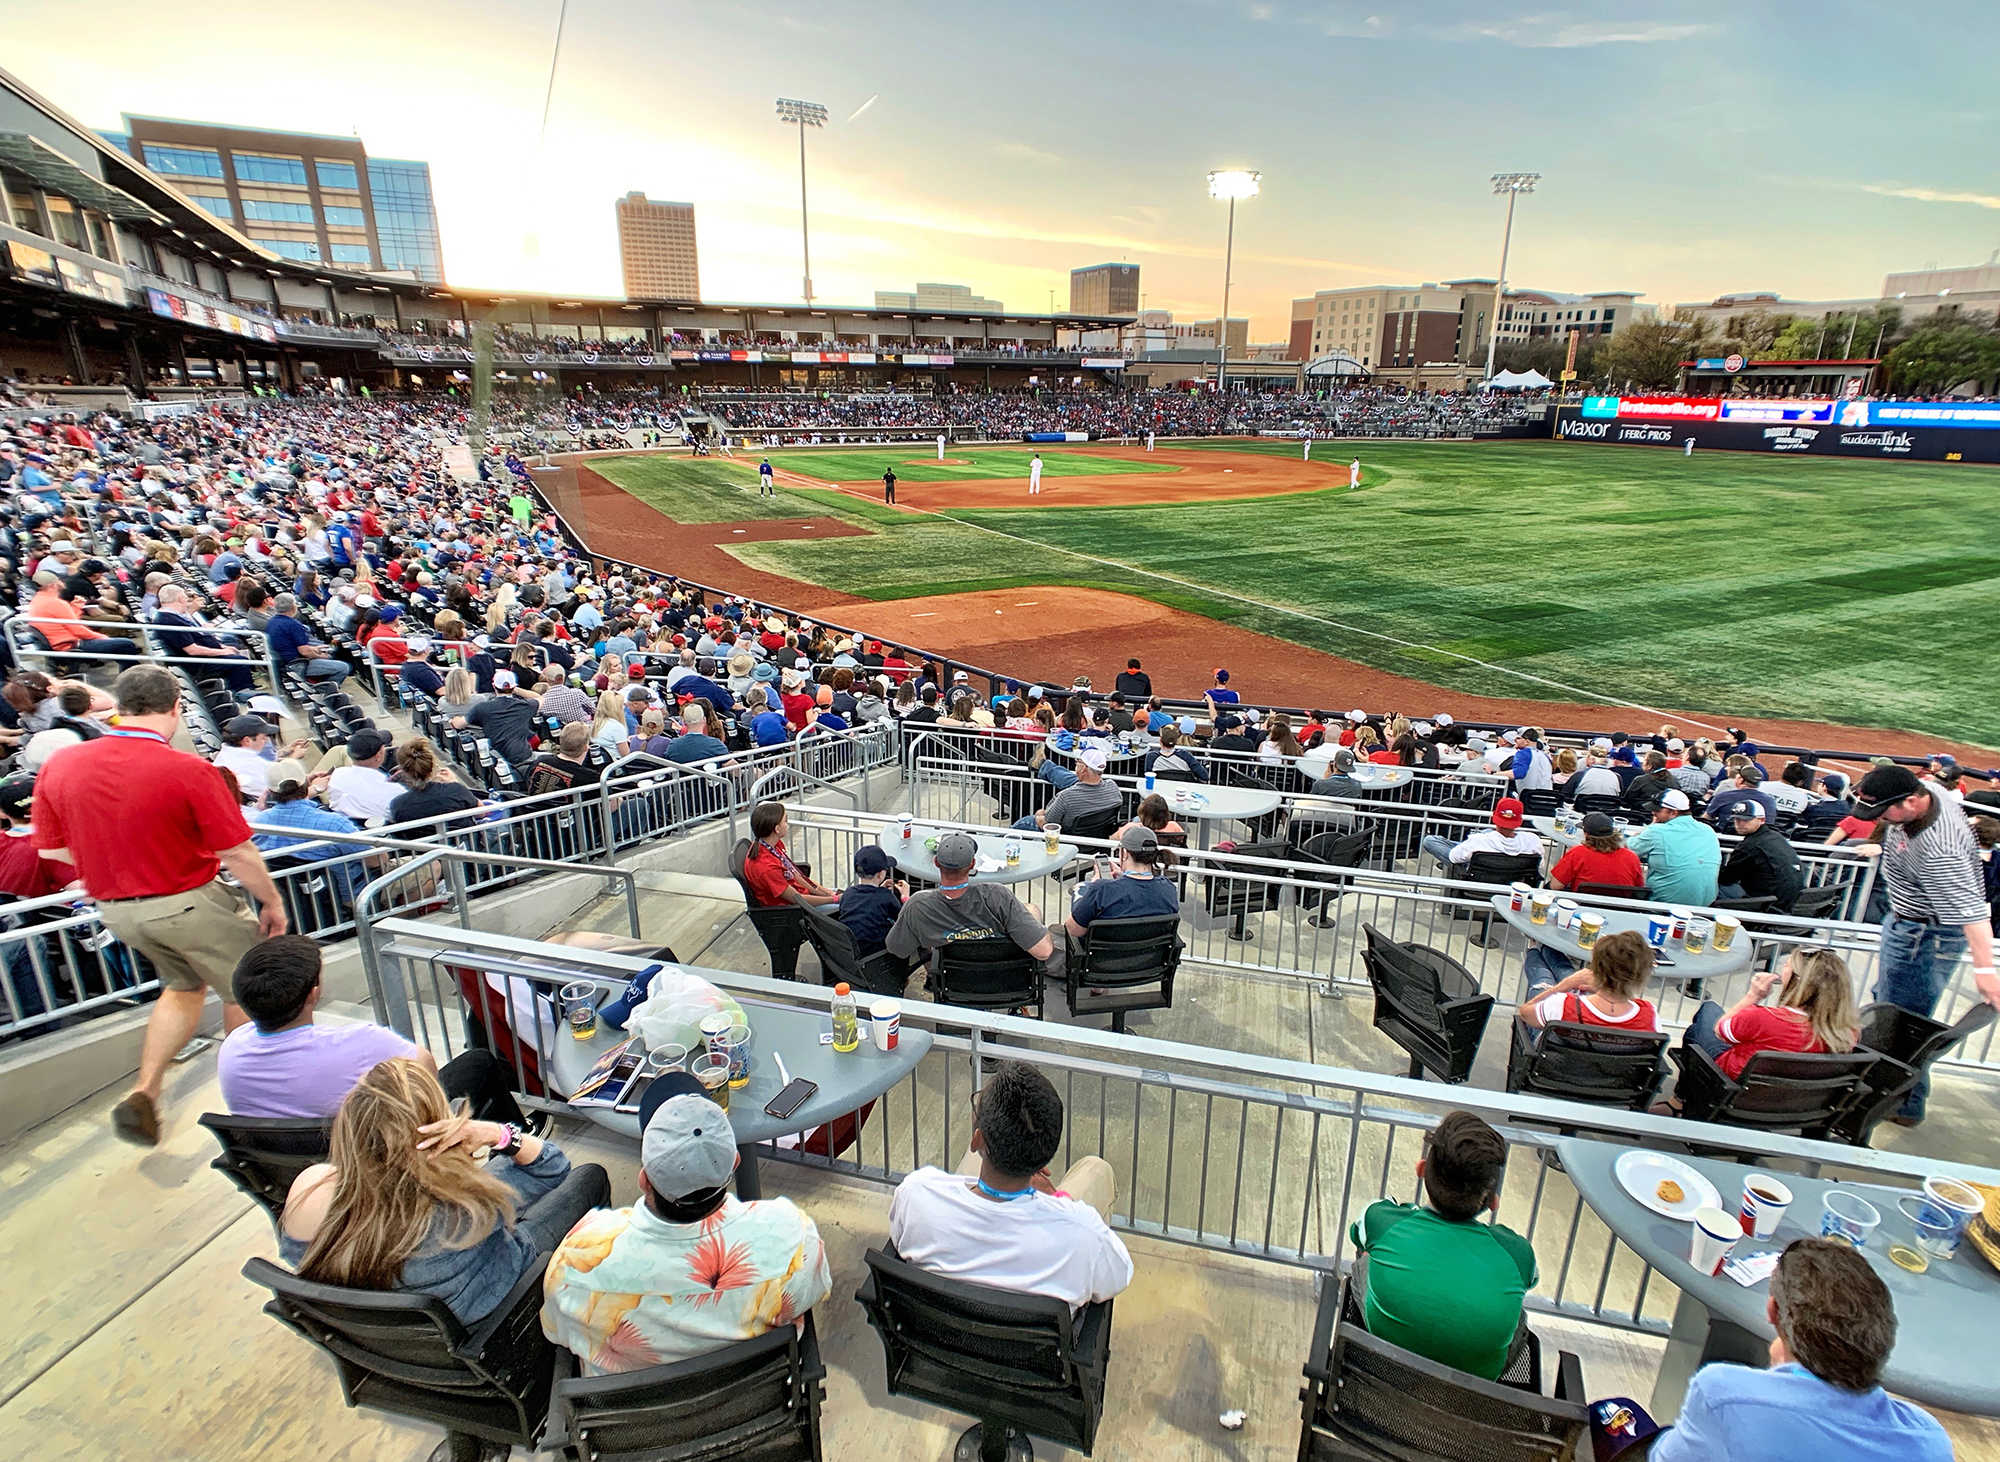 Hodgetown, Amarillo Sod Poodles, 2019